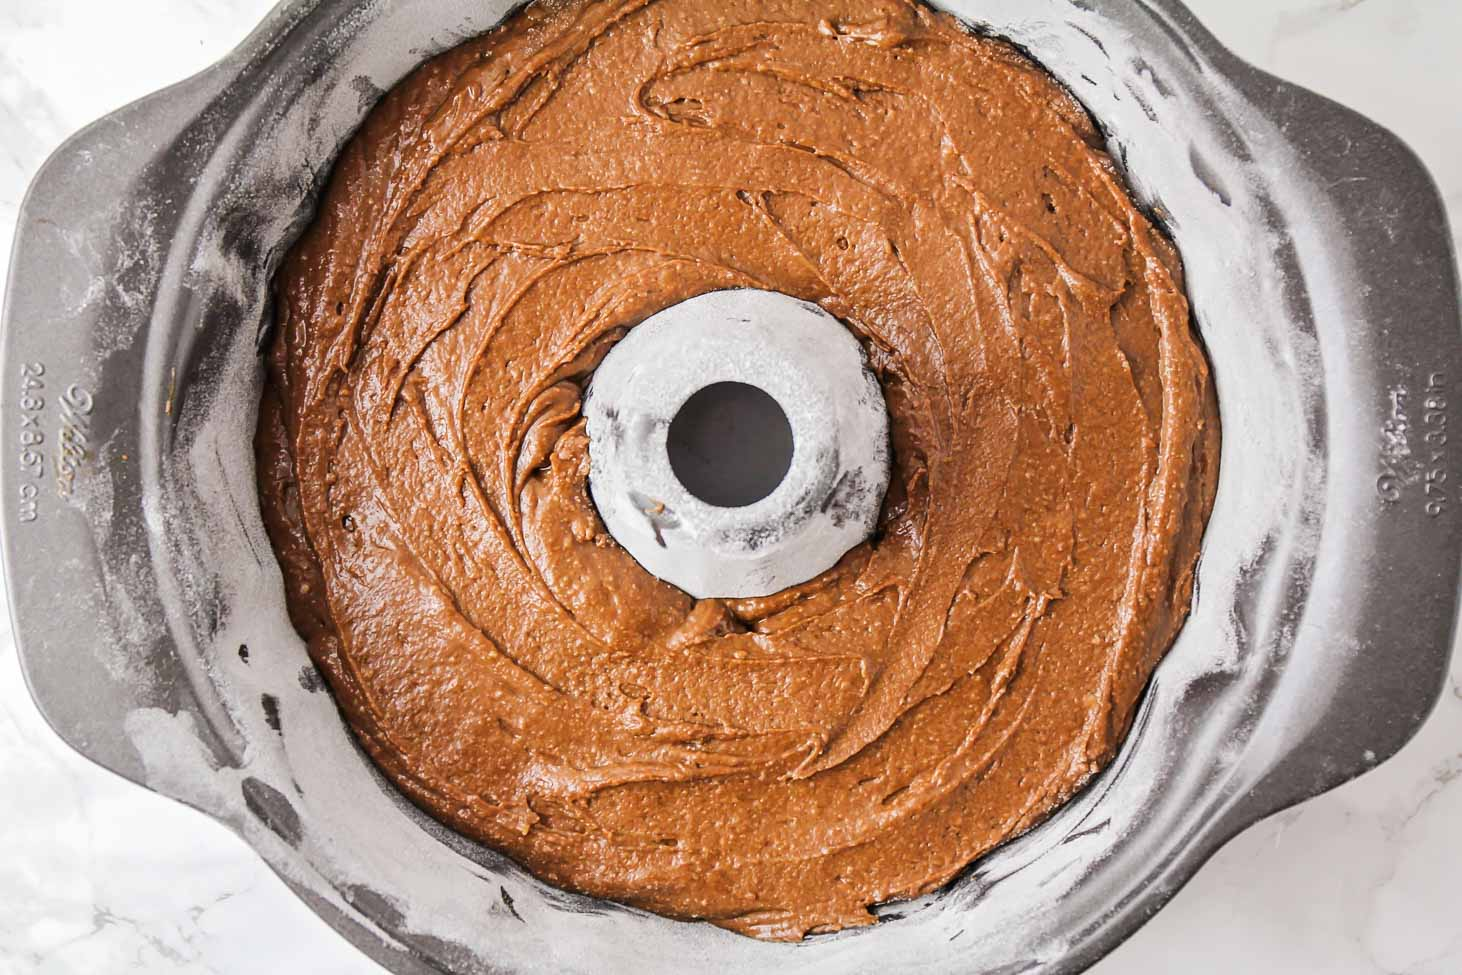 Chocolate cake batter in a bundt pan